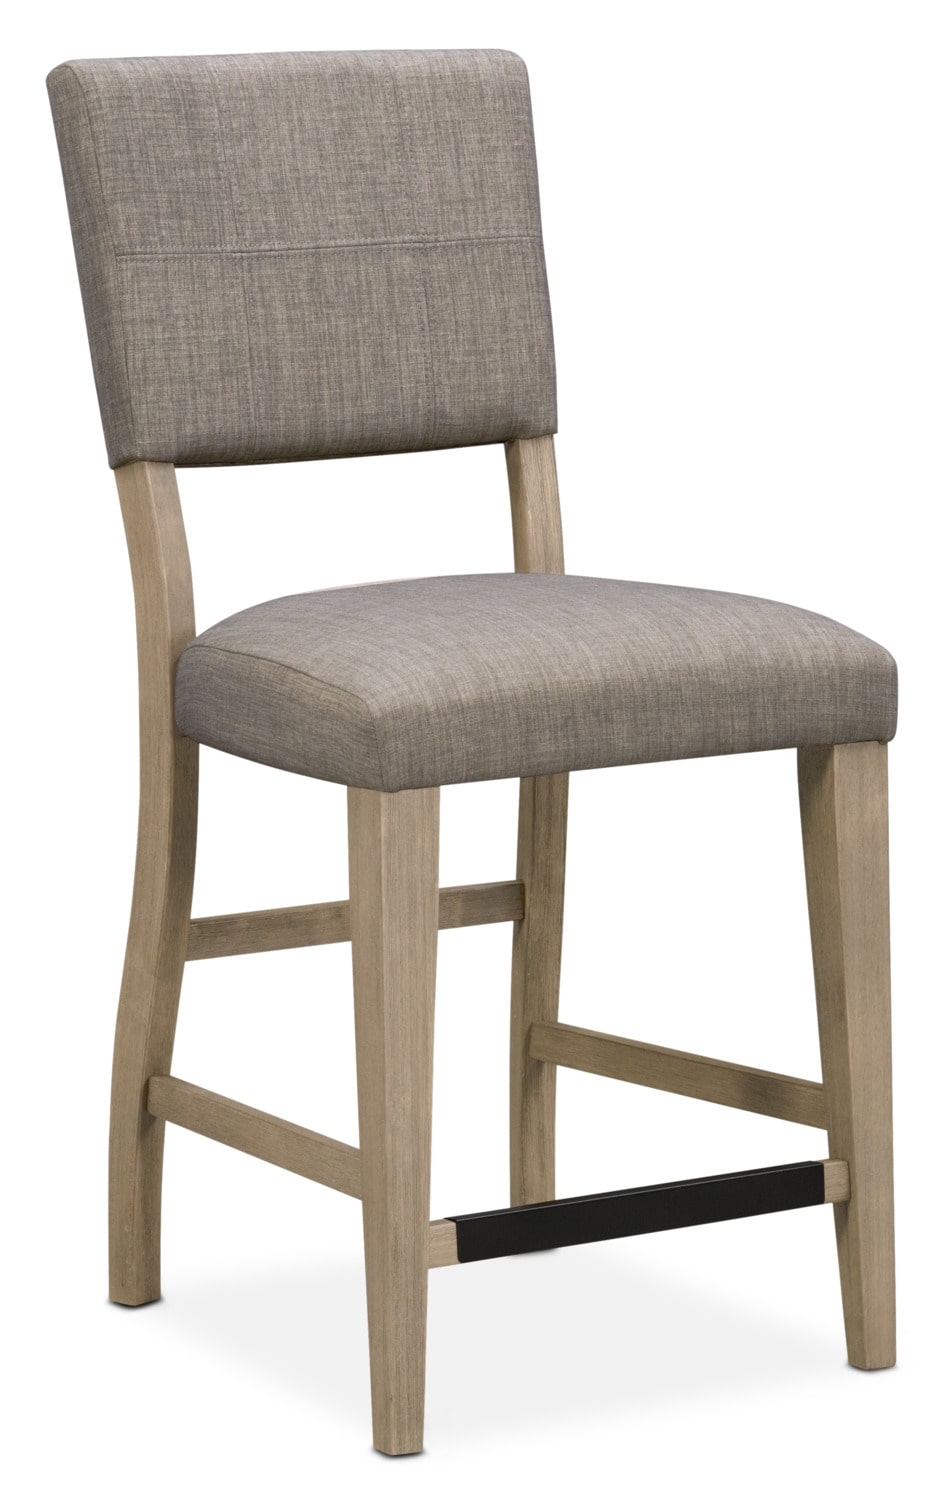 Tribeca Counter-Height Upholstered Side Chair- Gray